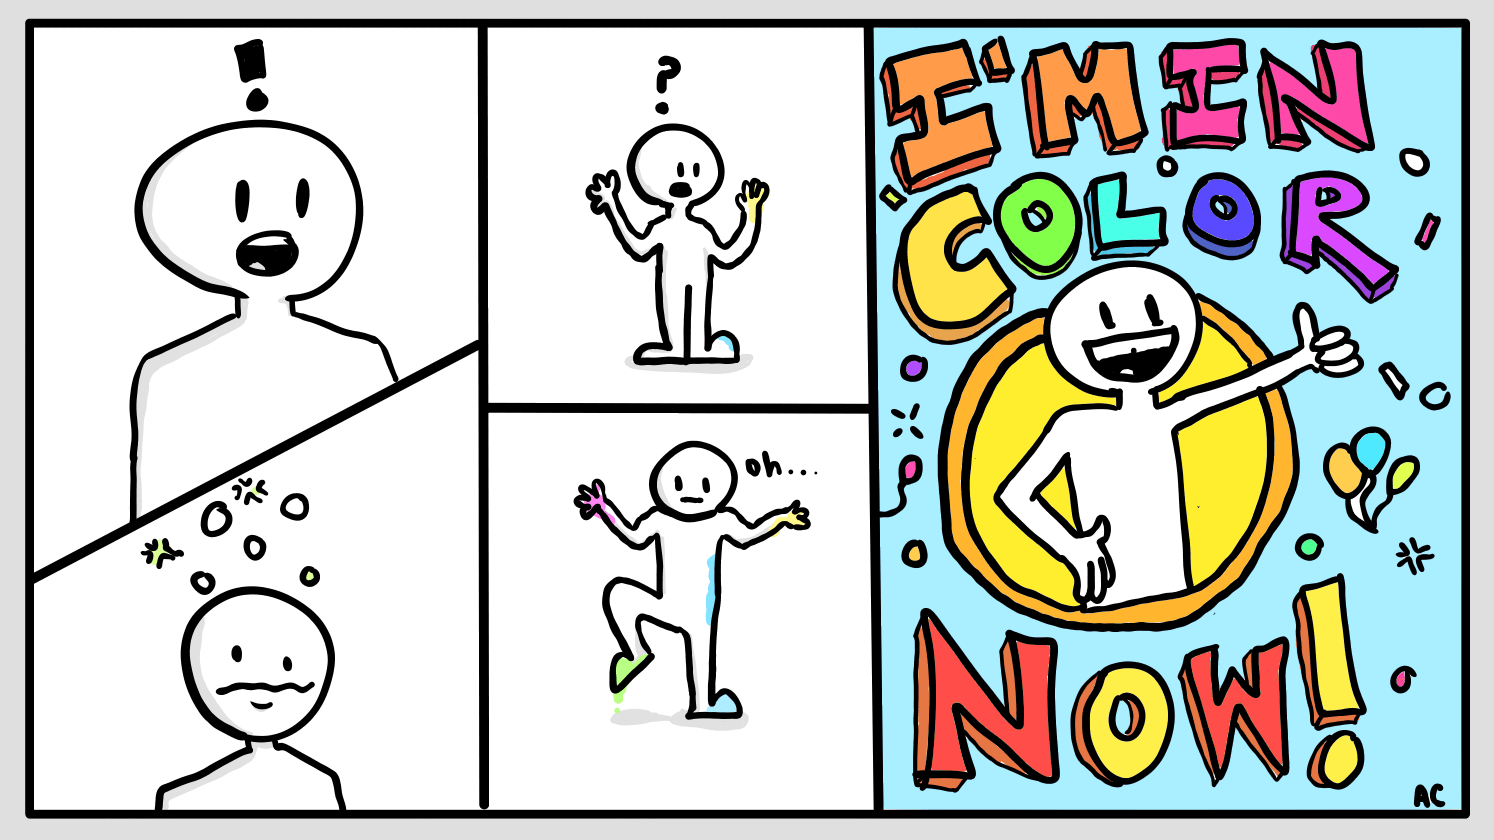 colorcartoon